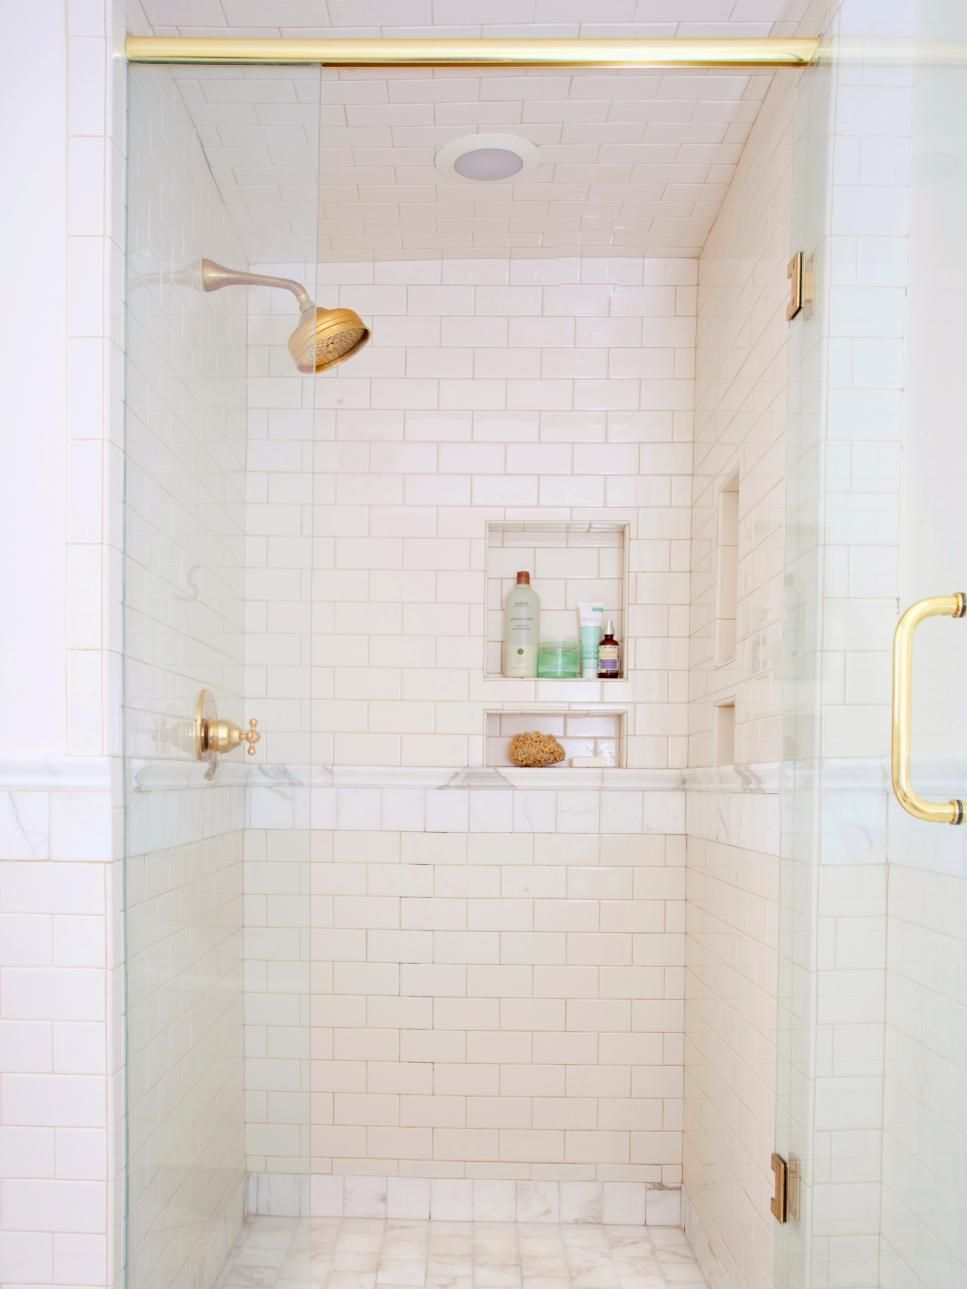 Browse pictures of showers packed with luxury features from rain